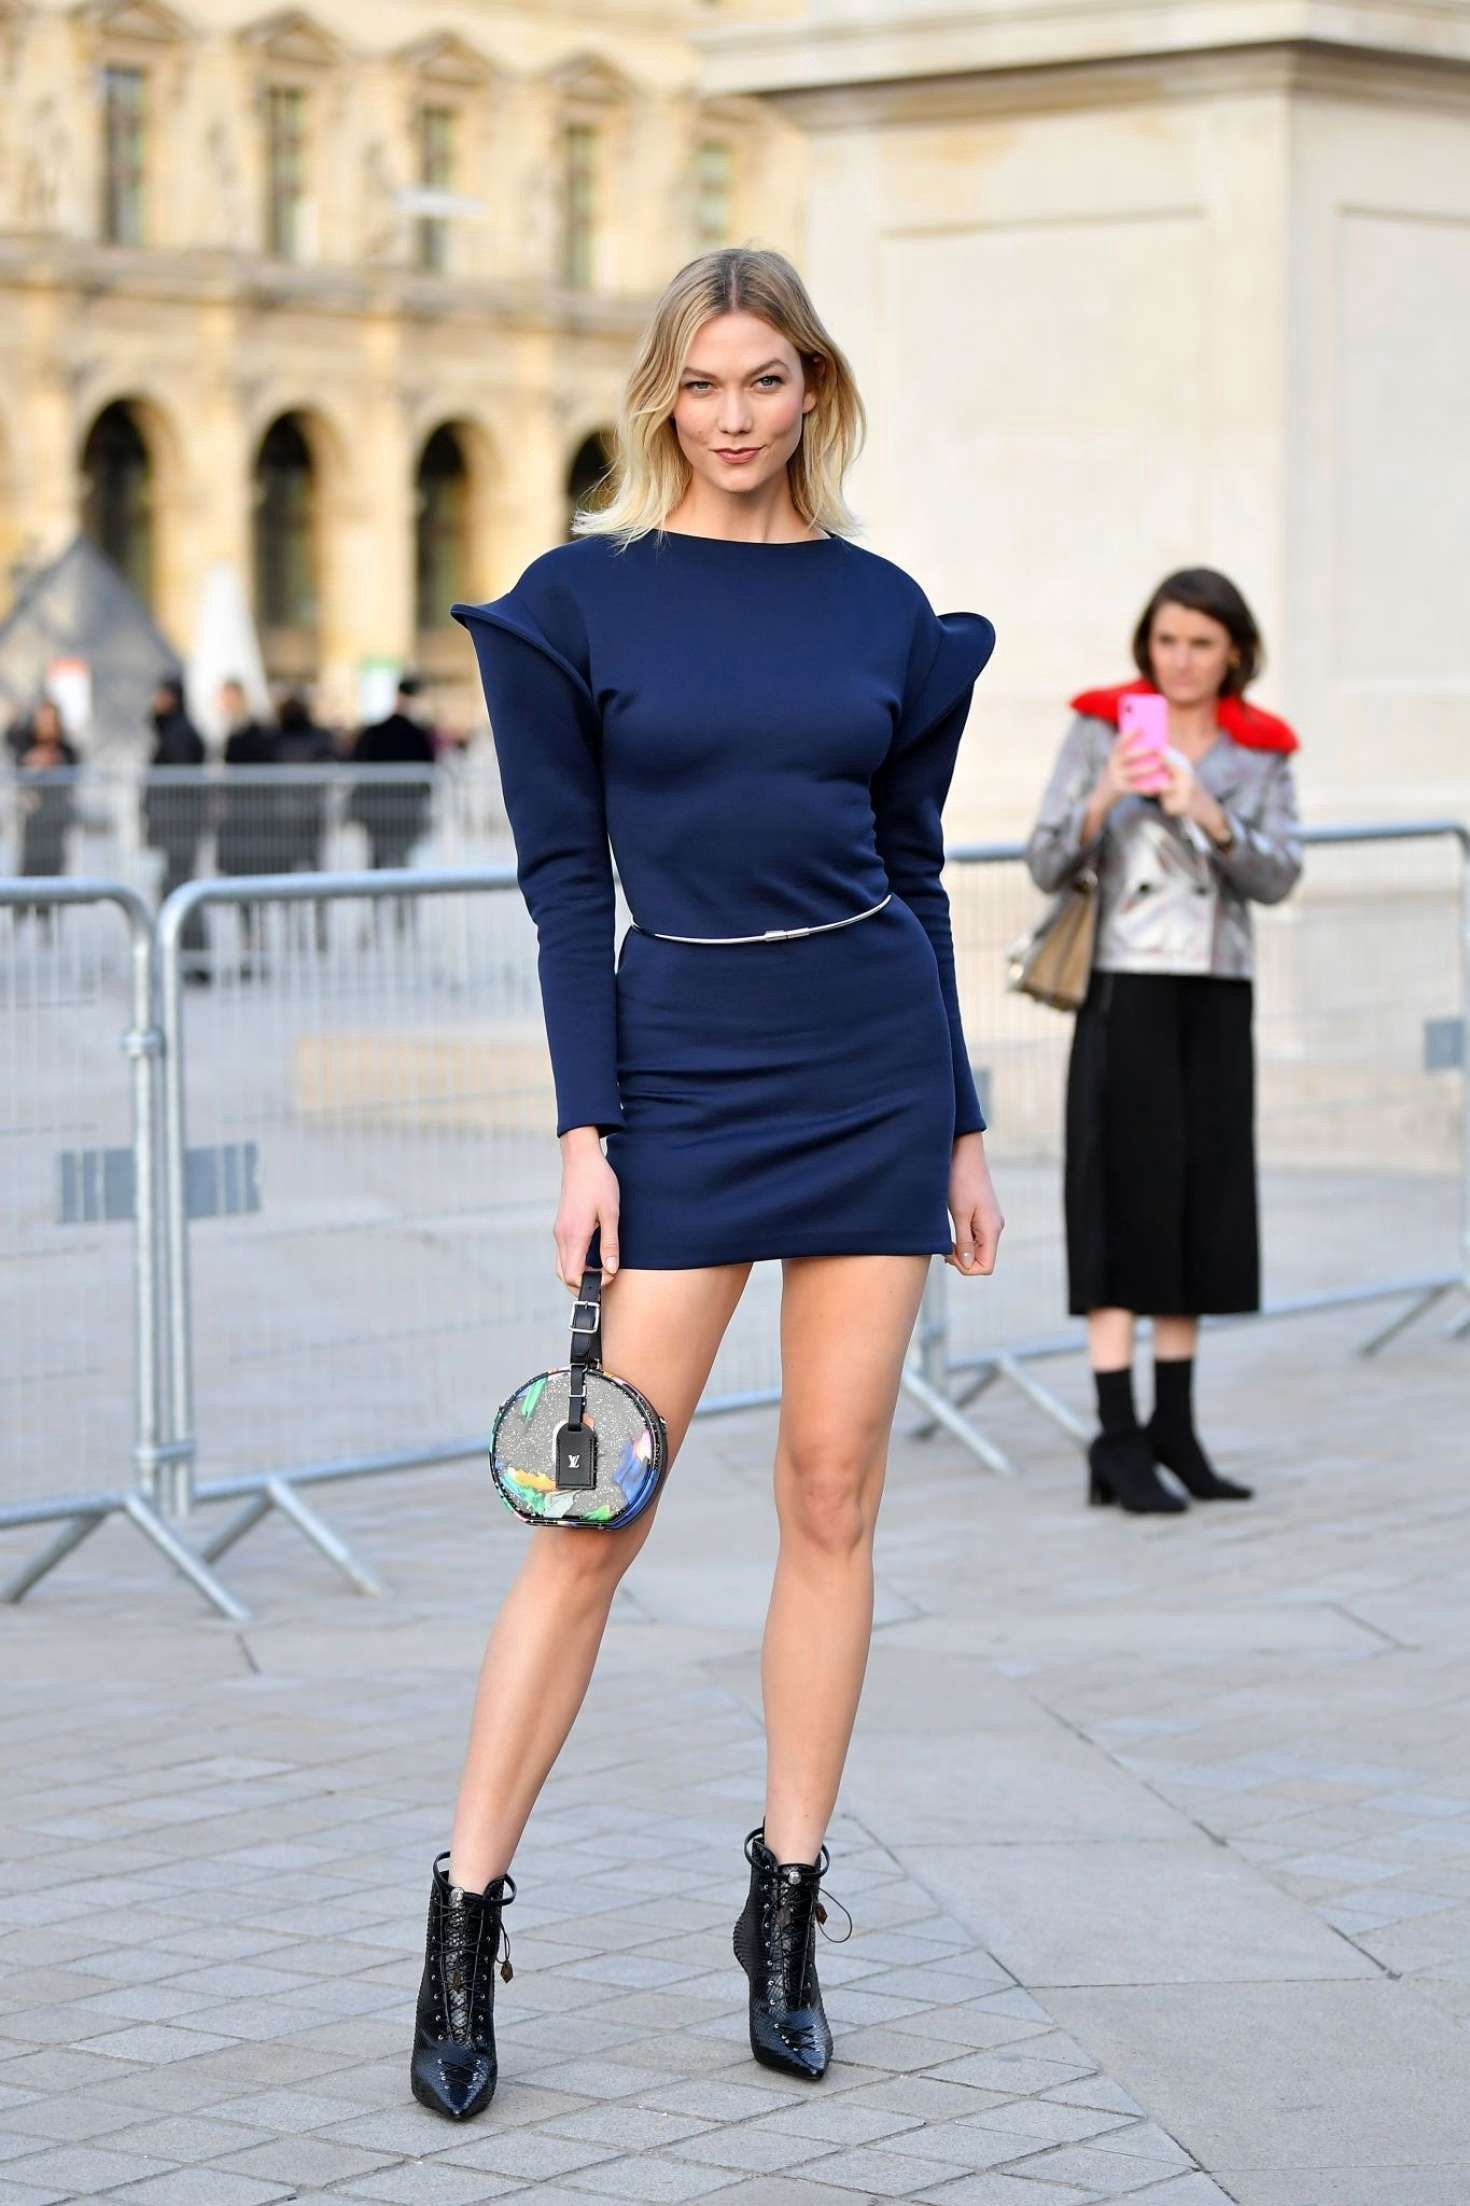 Color Shoes Goes With A Navy Blue Dress